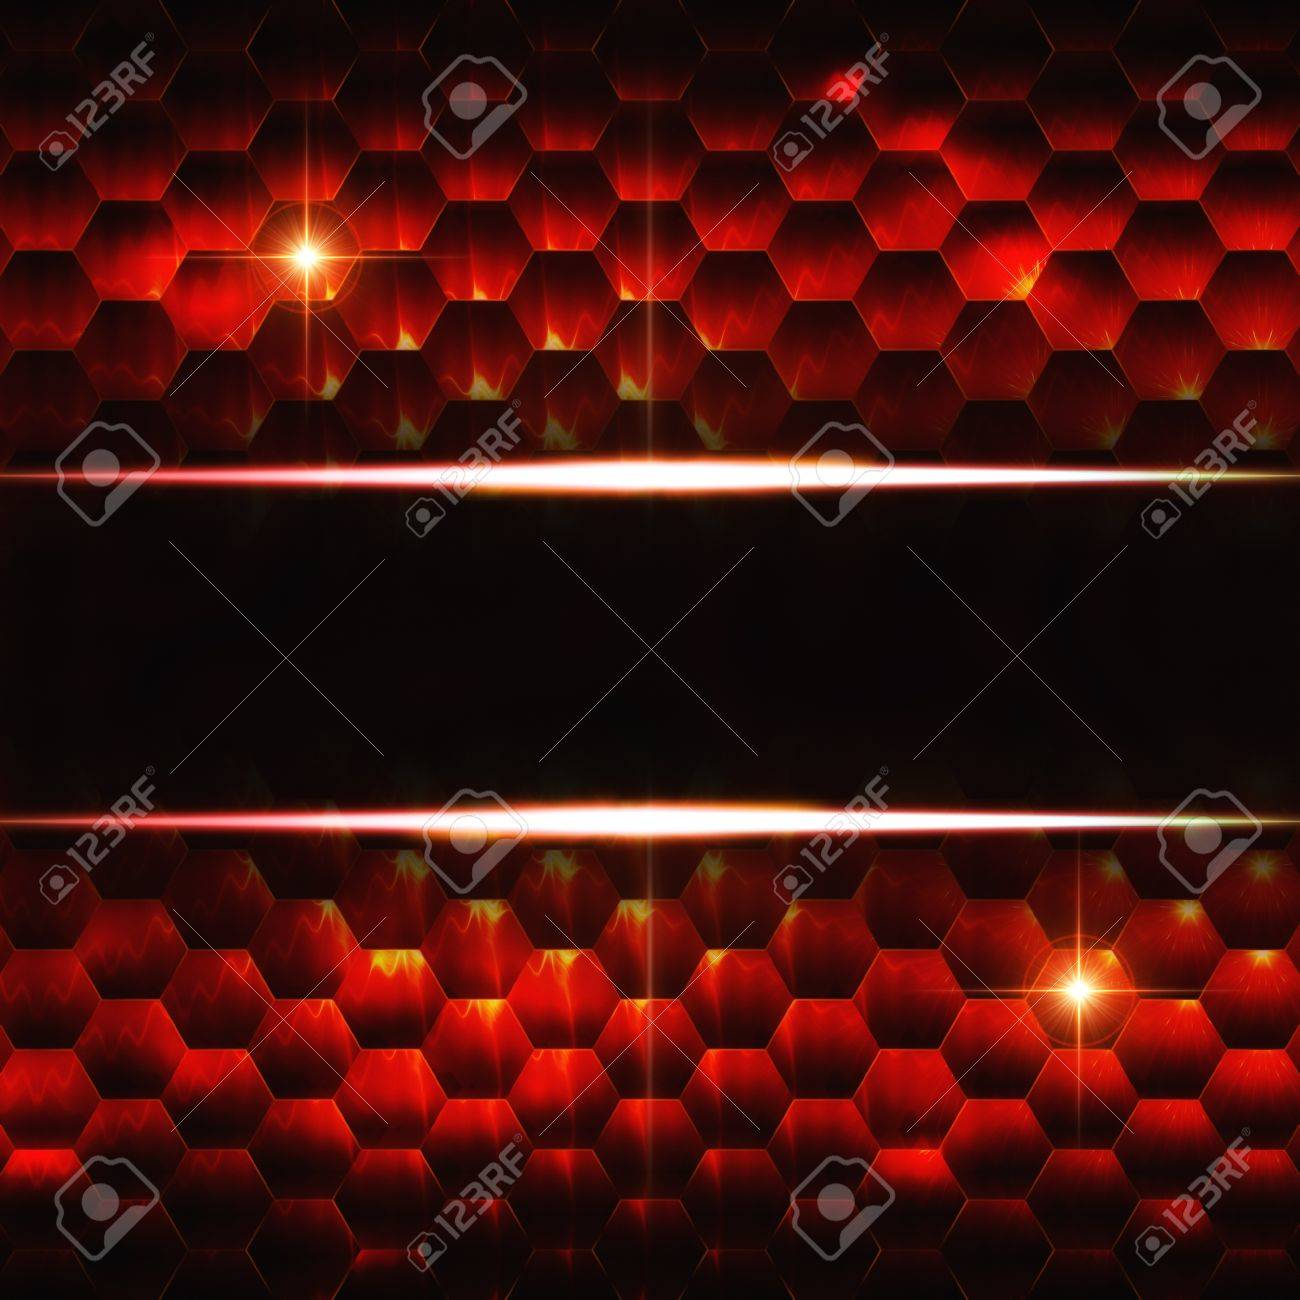 Abstract Black Red Background With Hexagons Lights And Text Stock Photo Picture And Royalty Free Image Image 17777625